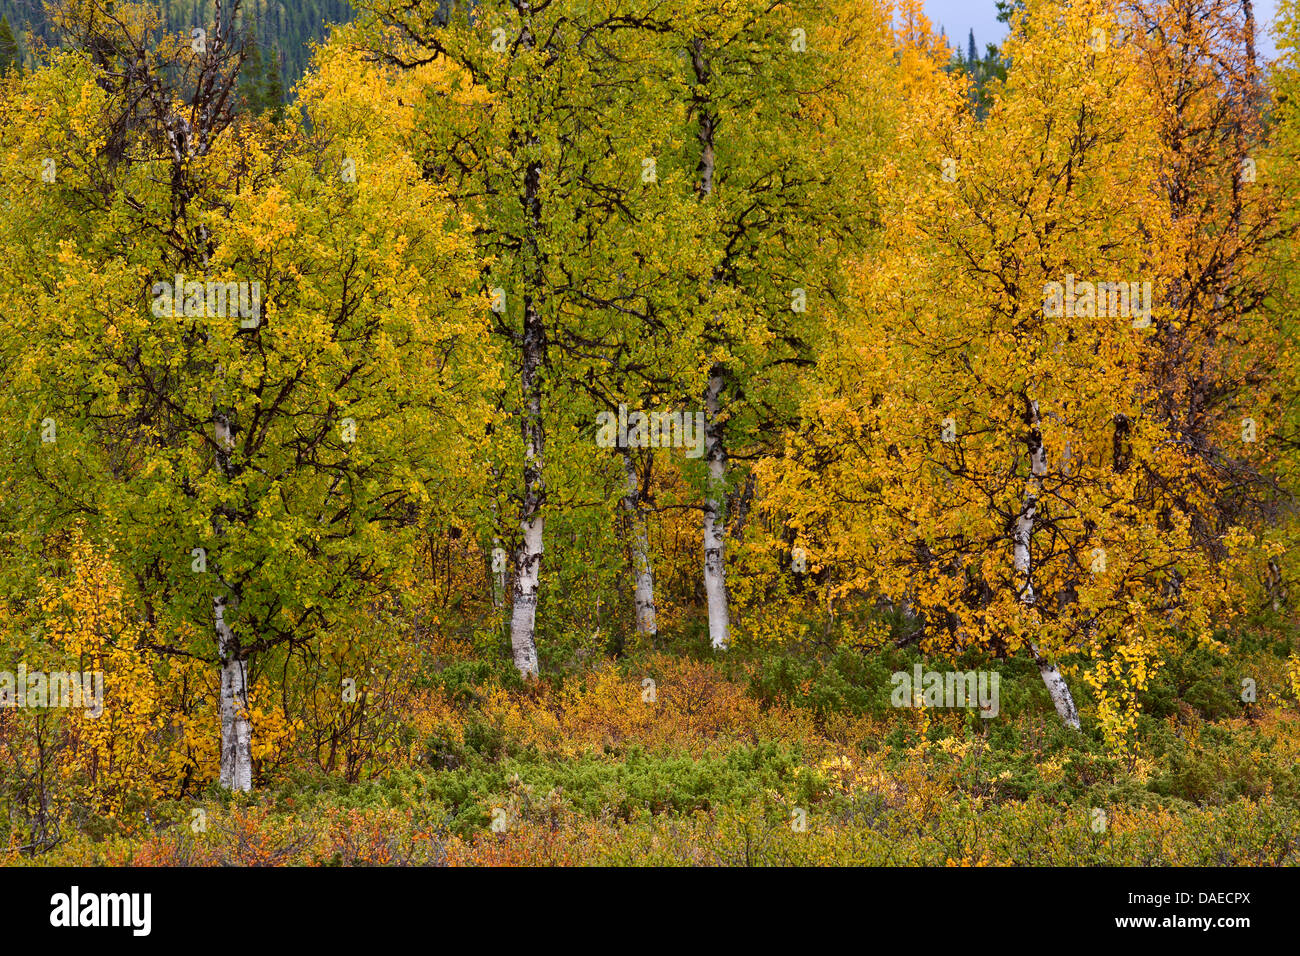 downy birch (Betula pubescens), Downy Birch in fall , Sweden, Lapland, Norrbottens Laen, Sarek National Park - Stock Image